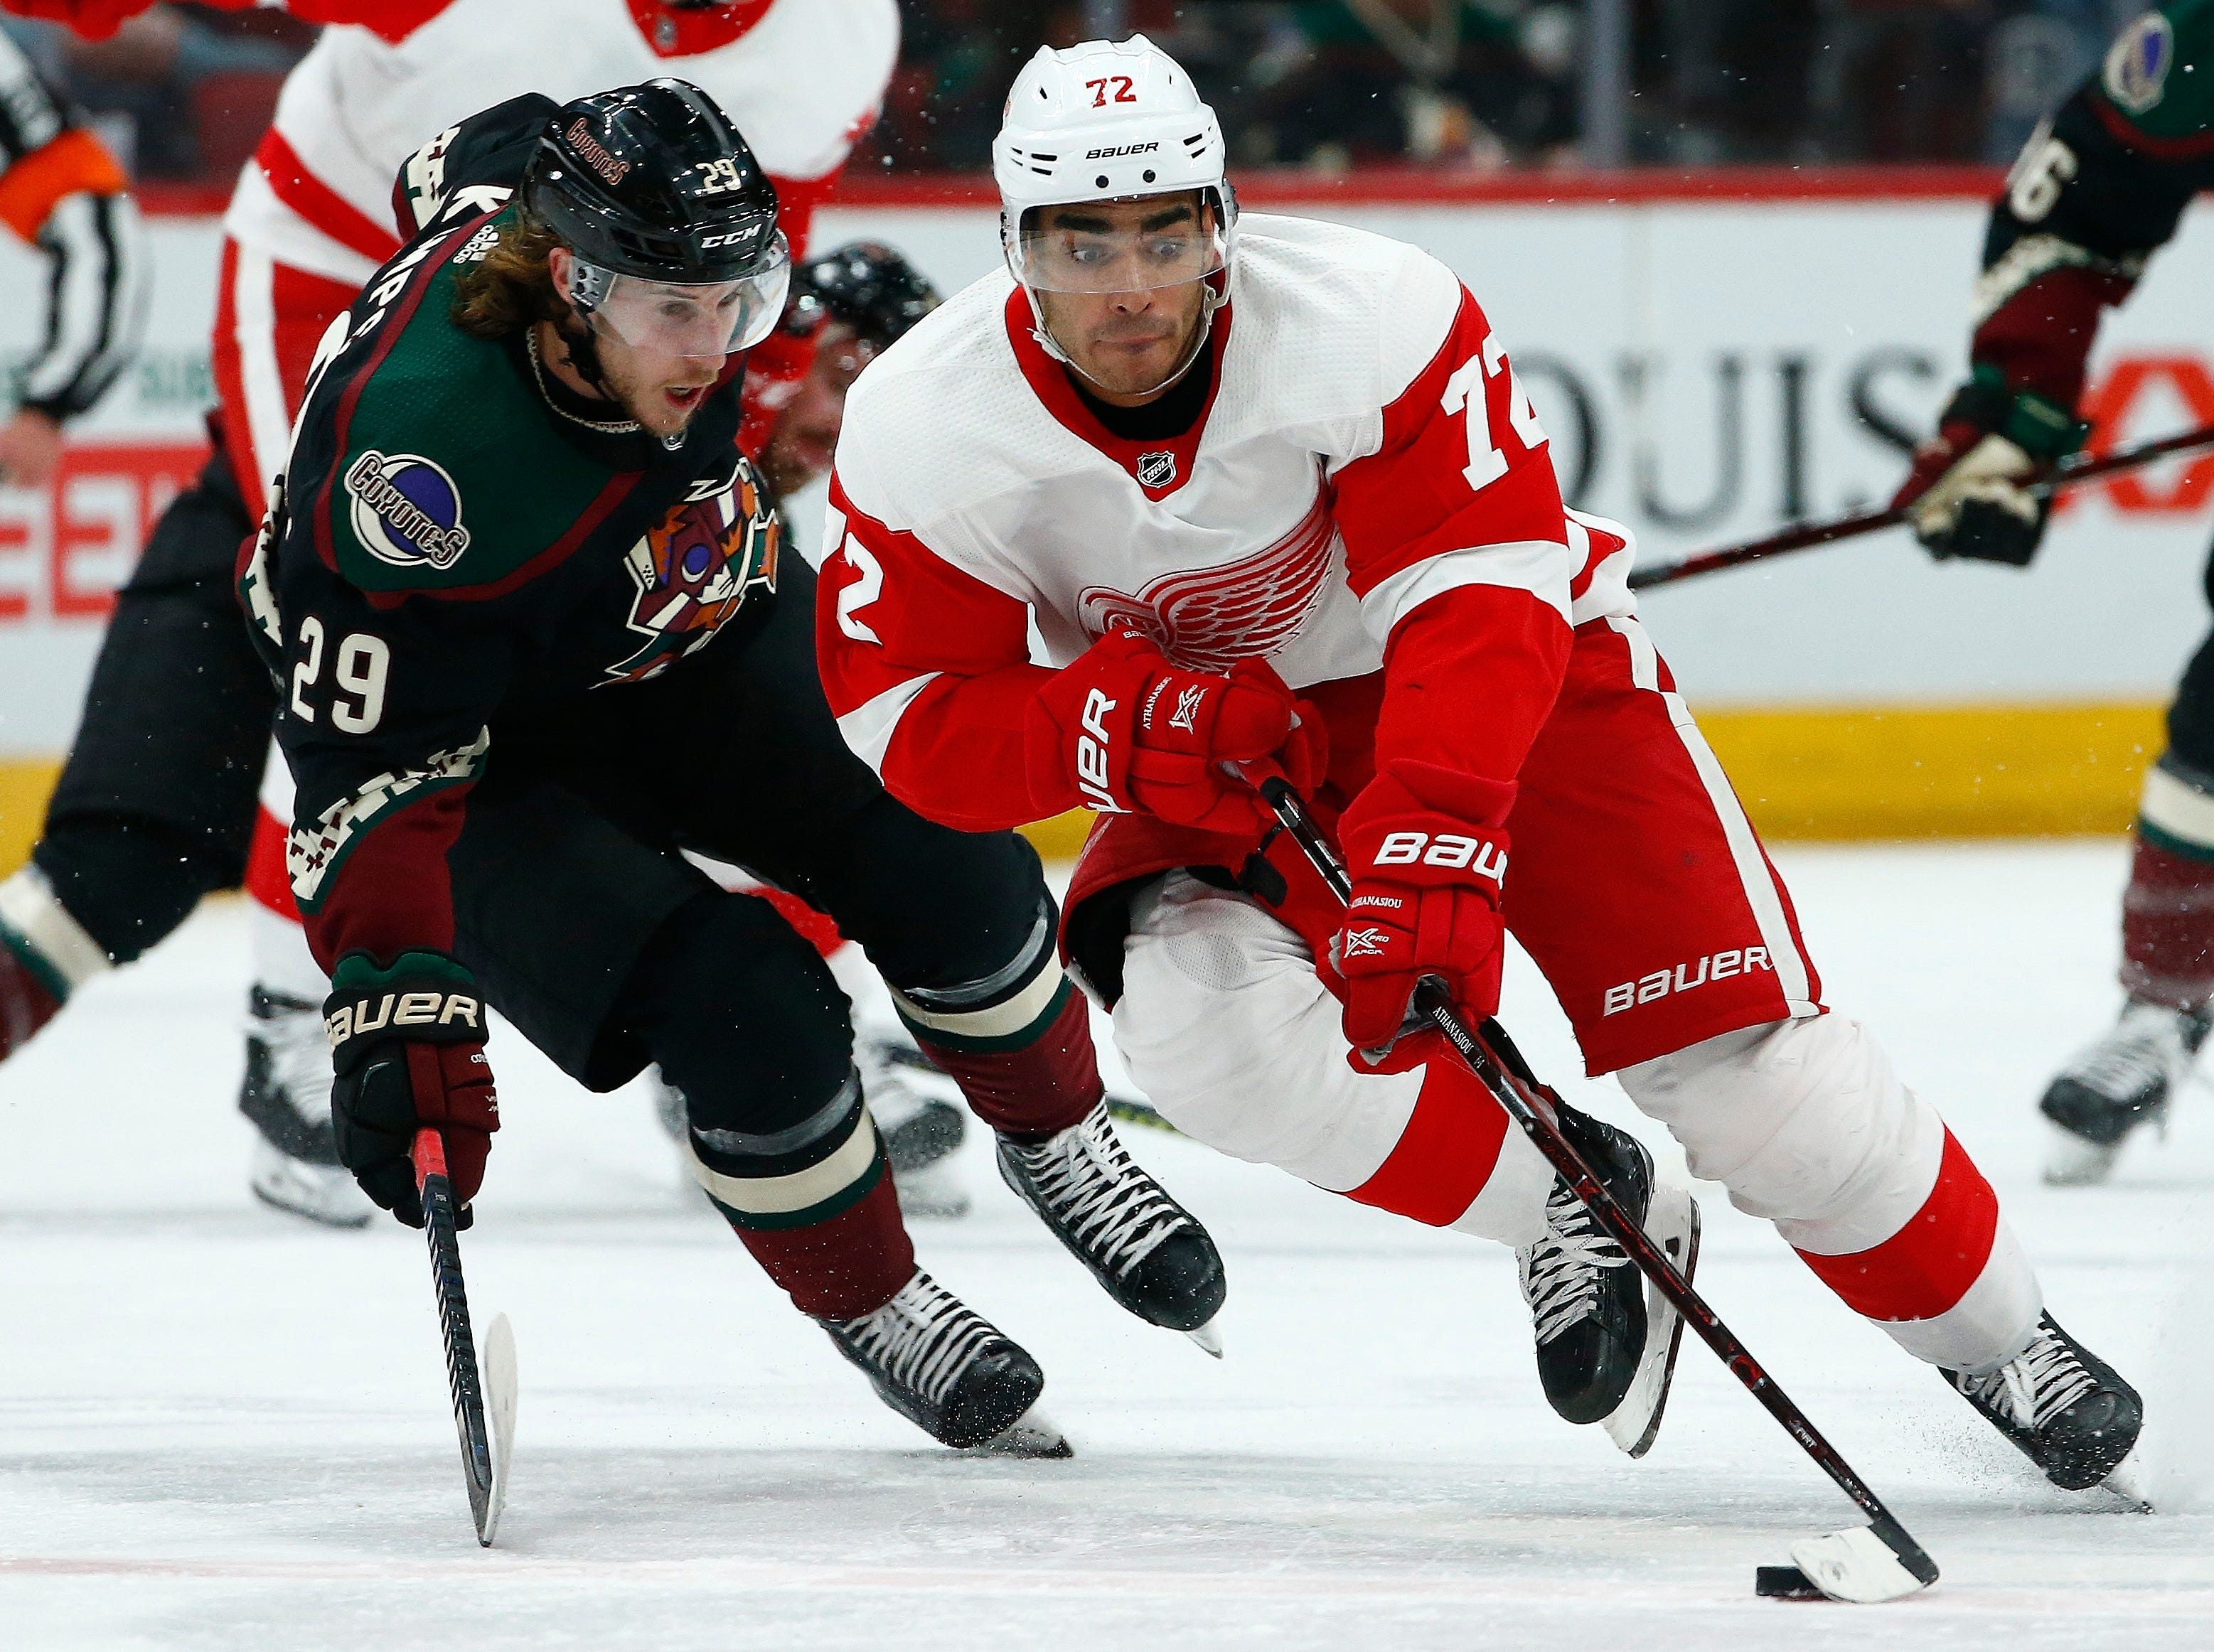 Detroit Red Wings center Andreas Athanasiou (72) skates with the puck in front of Arizona Coyotes right wing Mario Kempe (29) during the first period Saturday, March 2, 2019, in Glendale, Ariz. (AP Photo/Ross D. Franklin)